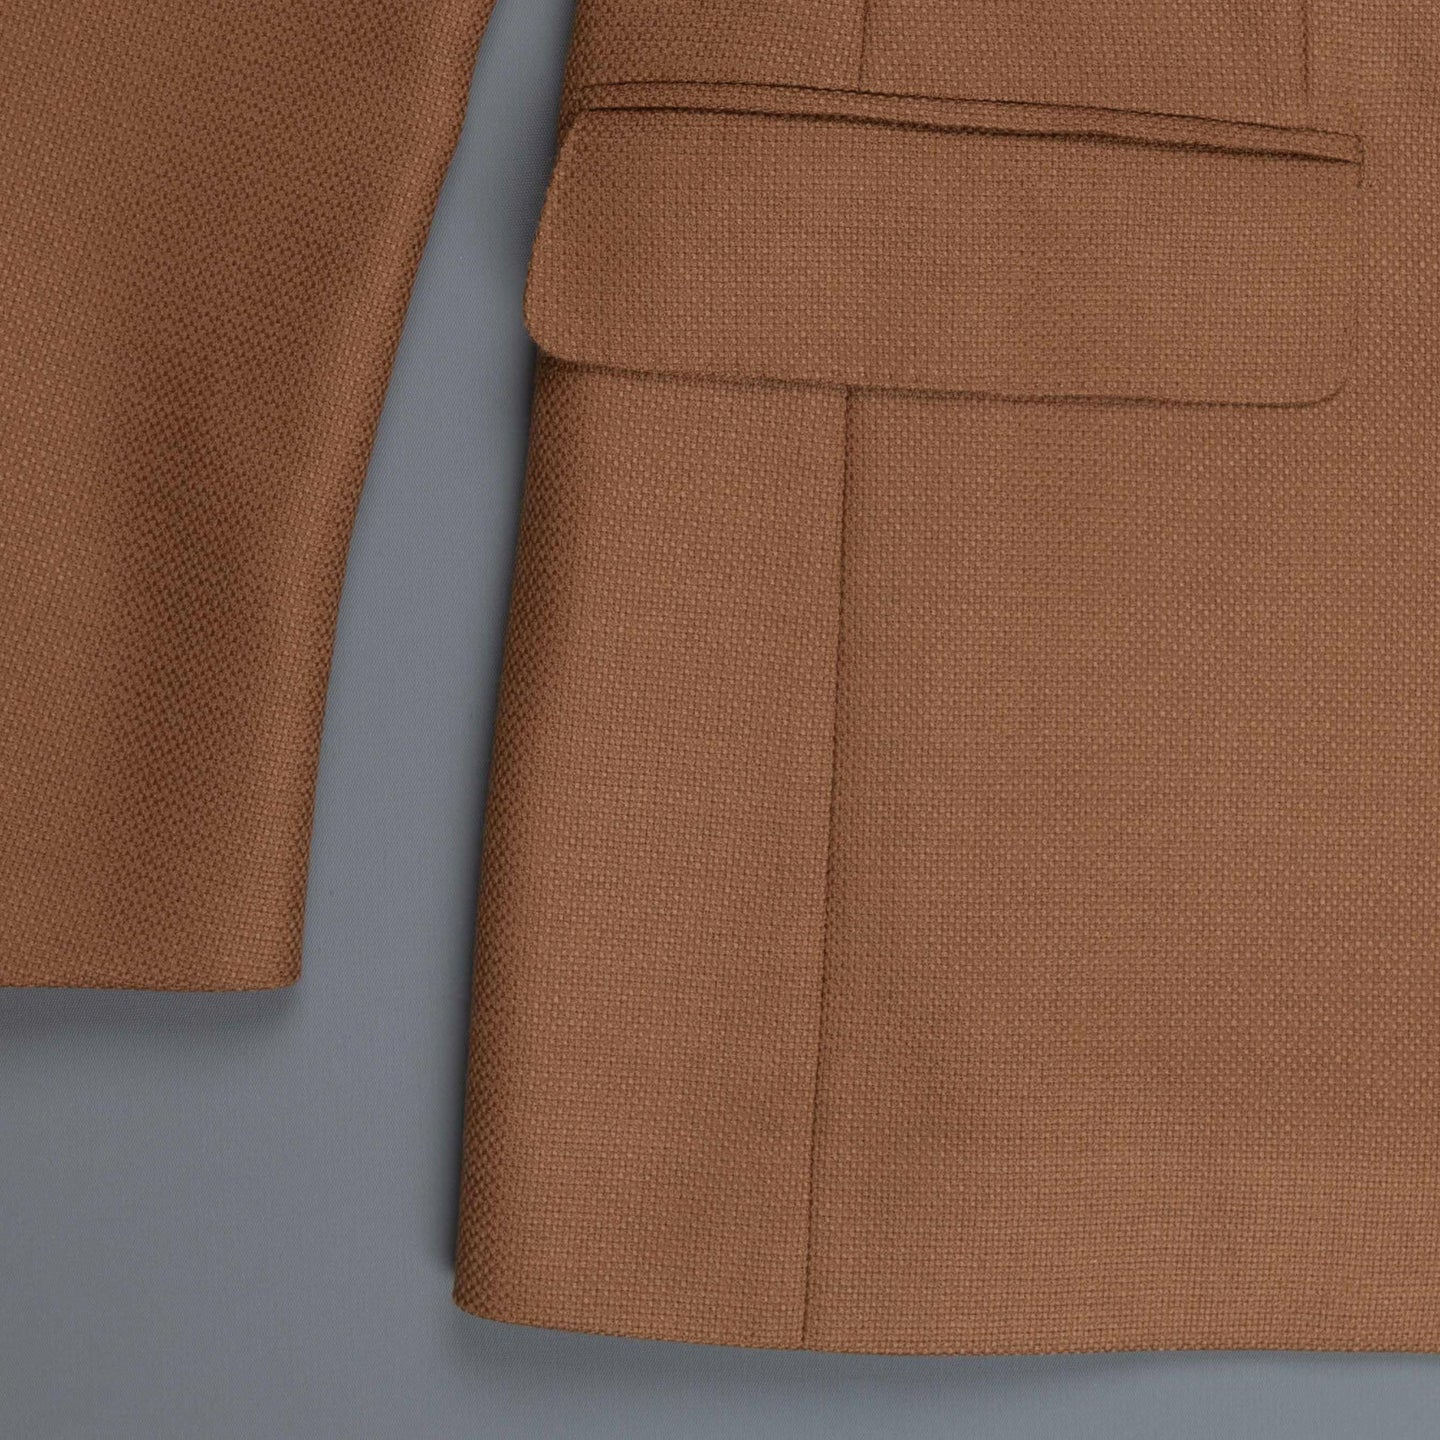 Caruso Nabucco double breasted jacket in camel hopsack wool